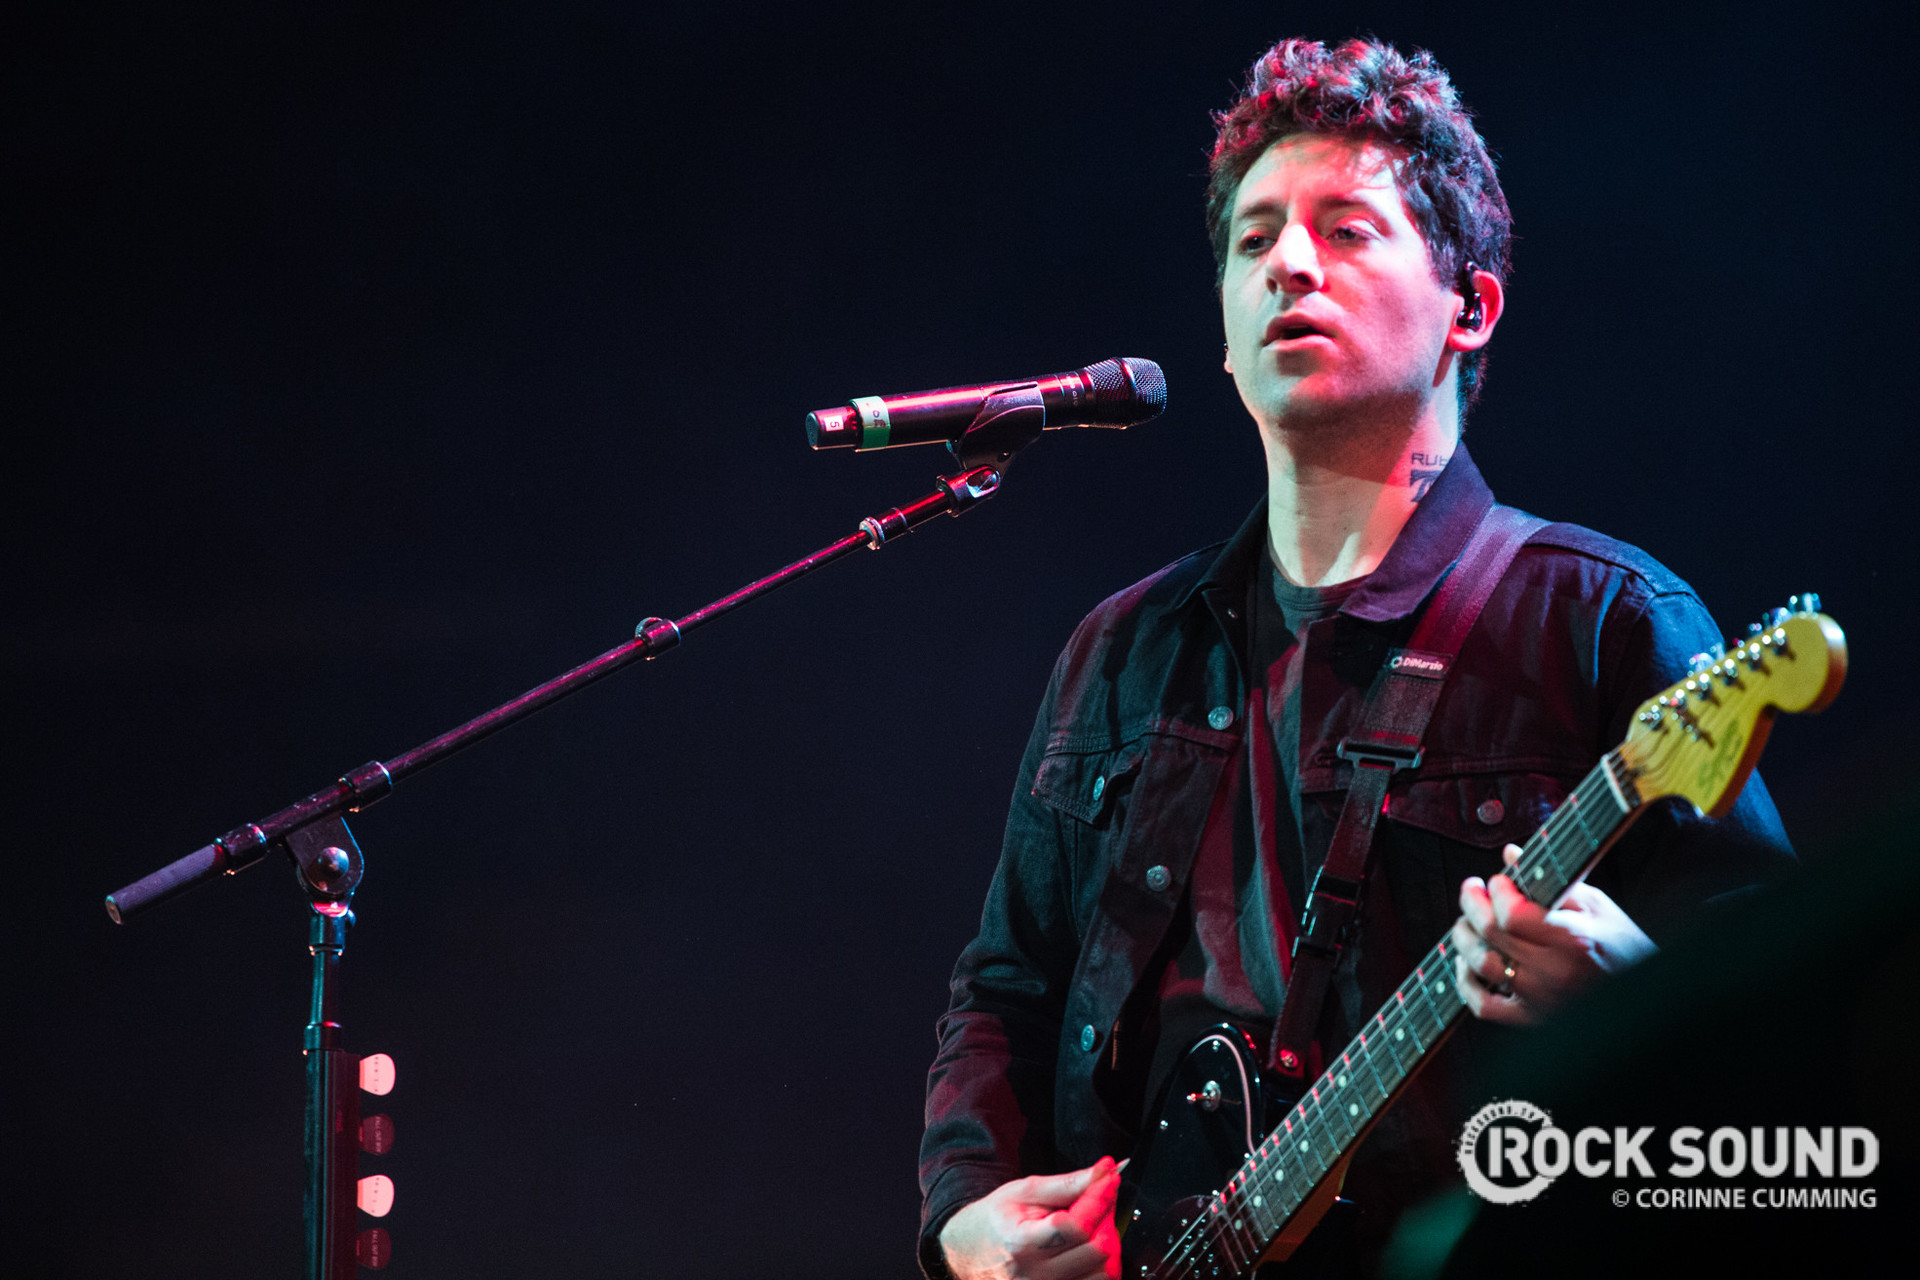 Fall Out Boy's Joe Trohman Is Selling 27 Of His Guitars